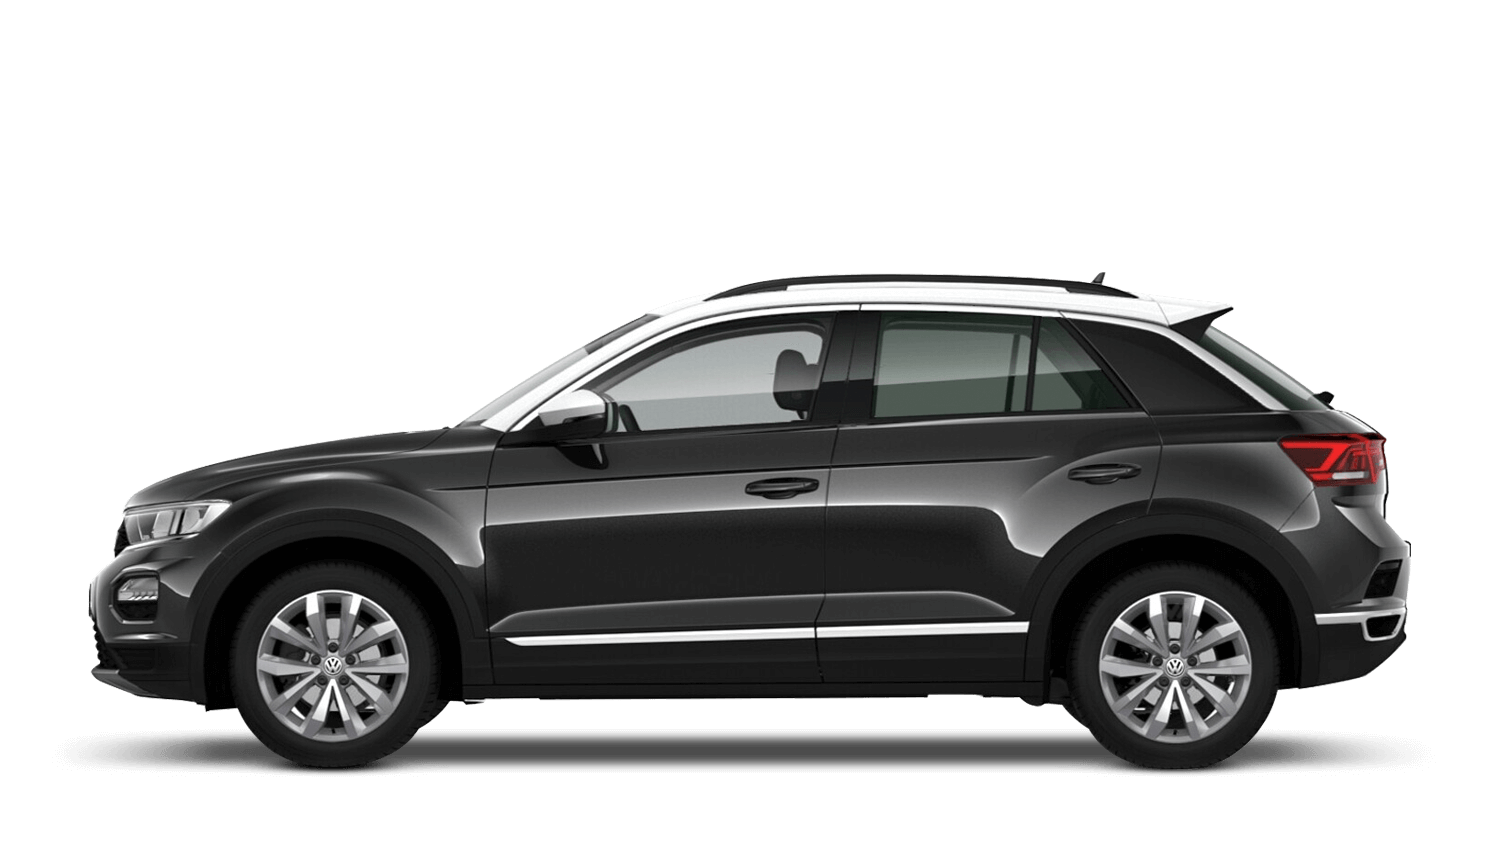 Deep Black Pearl with Pure White Roof (Metallic / Pearl) Volkswagen T Roc